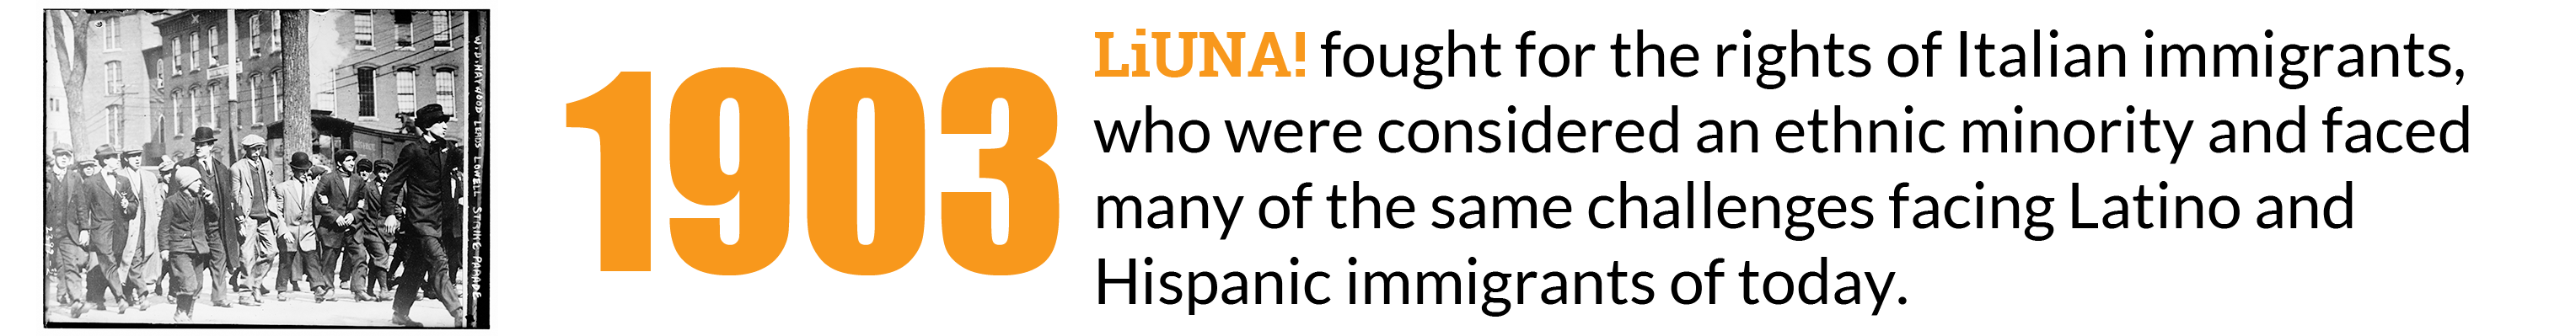 1903: LIUNA Fought for the rights of Italian immigrants, who were considered an ethnic minority and faced many of the same challenges facing Latino and Hispanic immigrants of today.